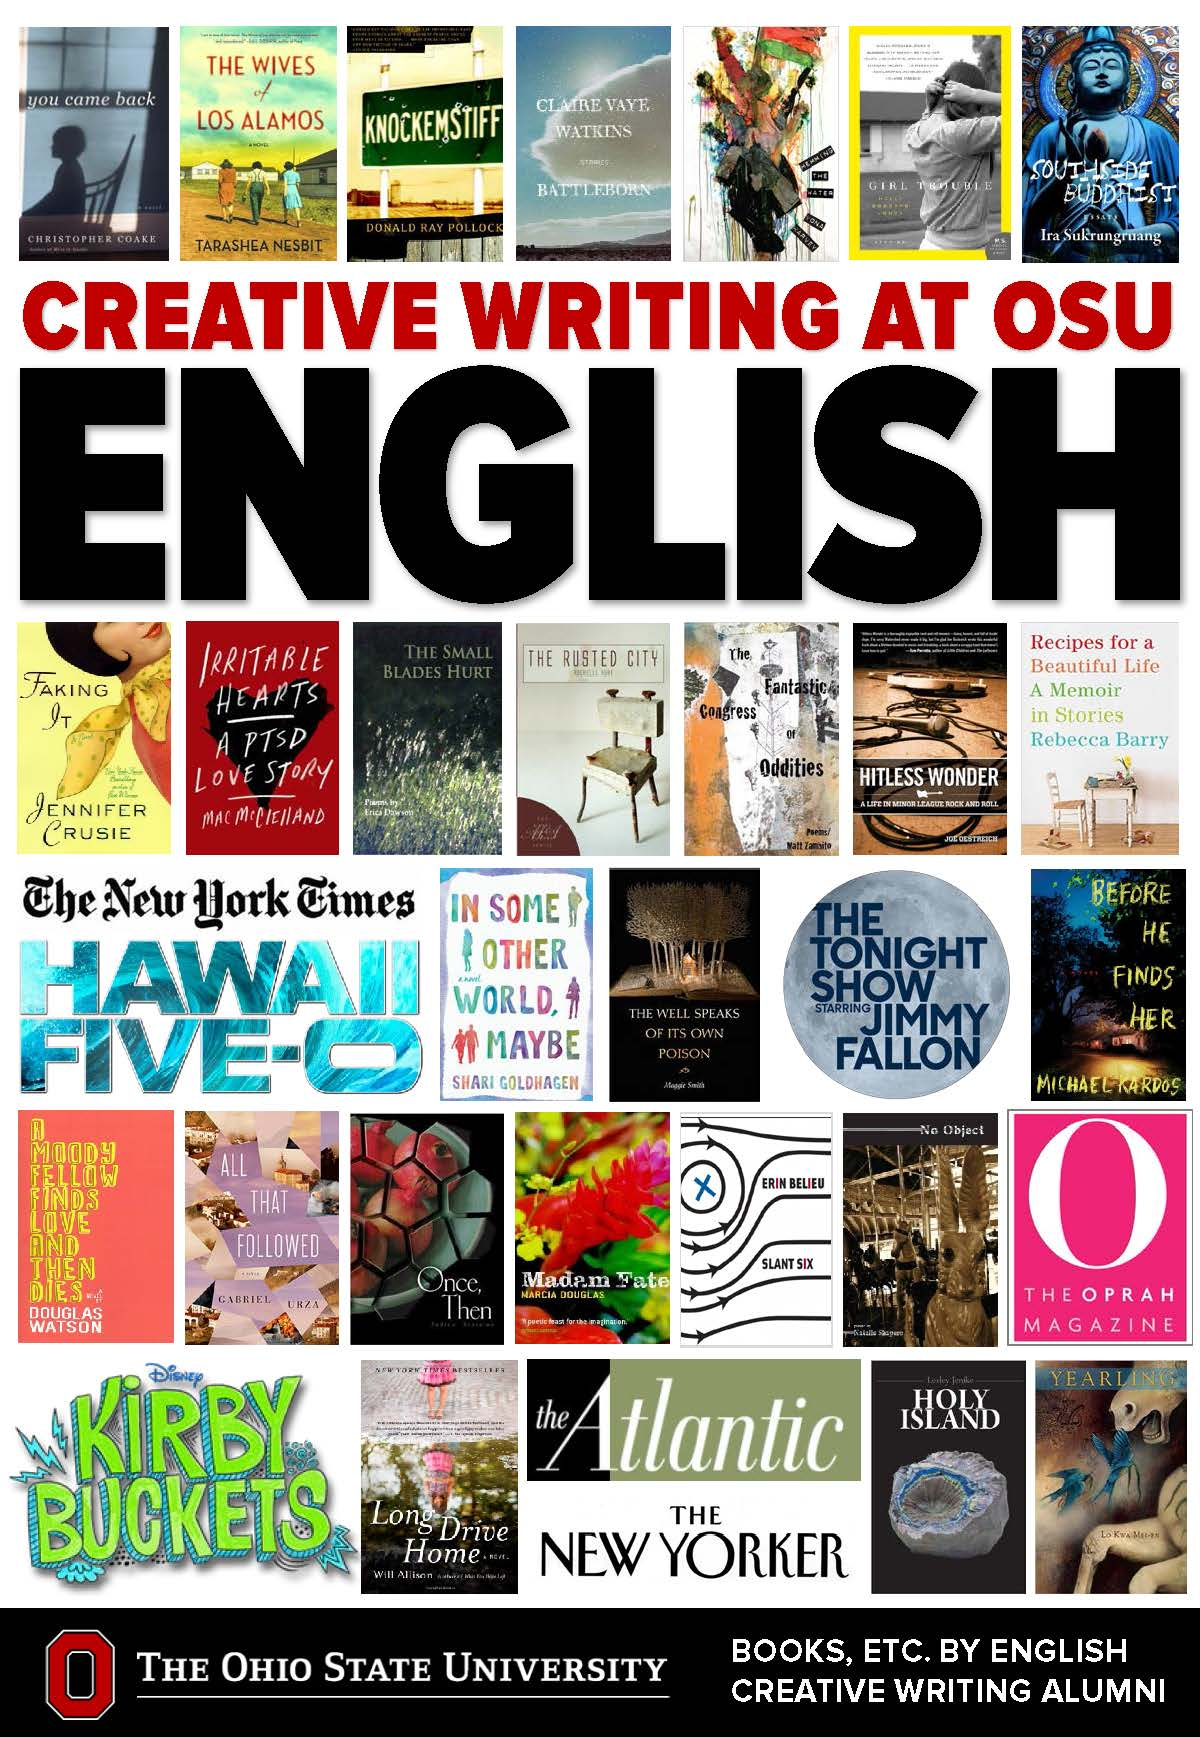 Fully funded phd programs in creative writing